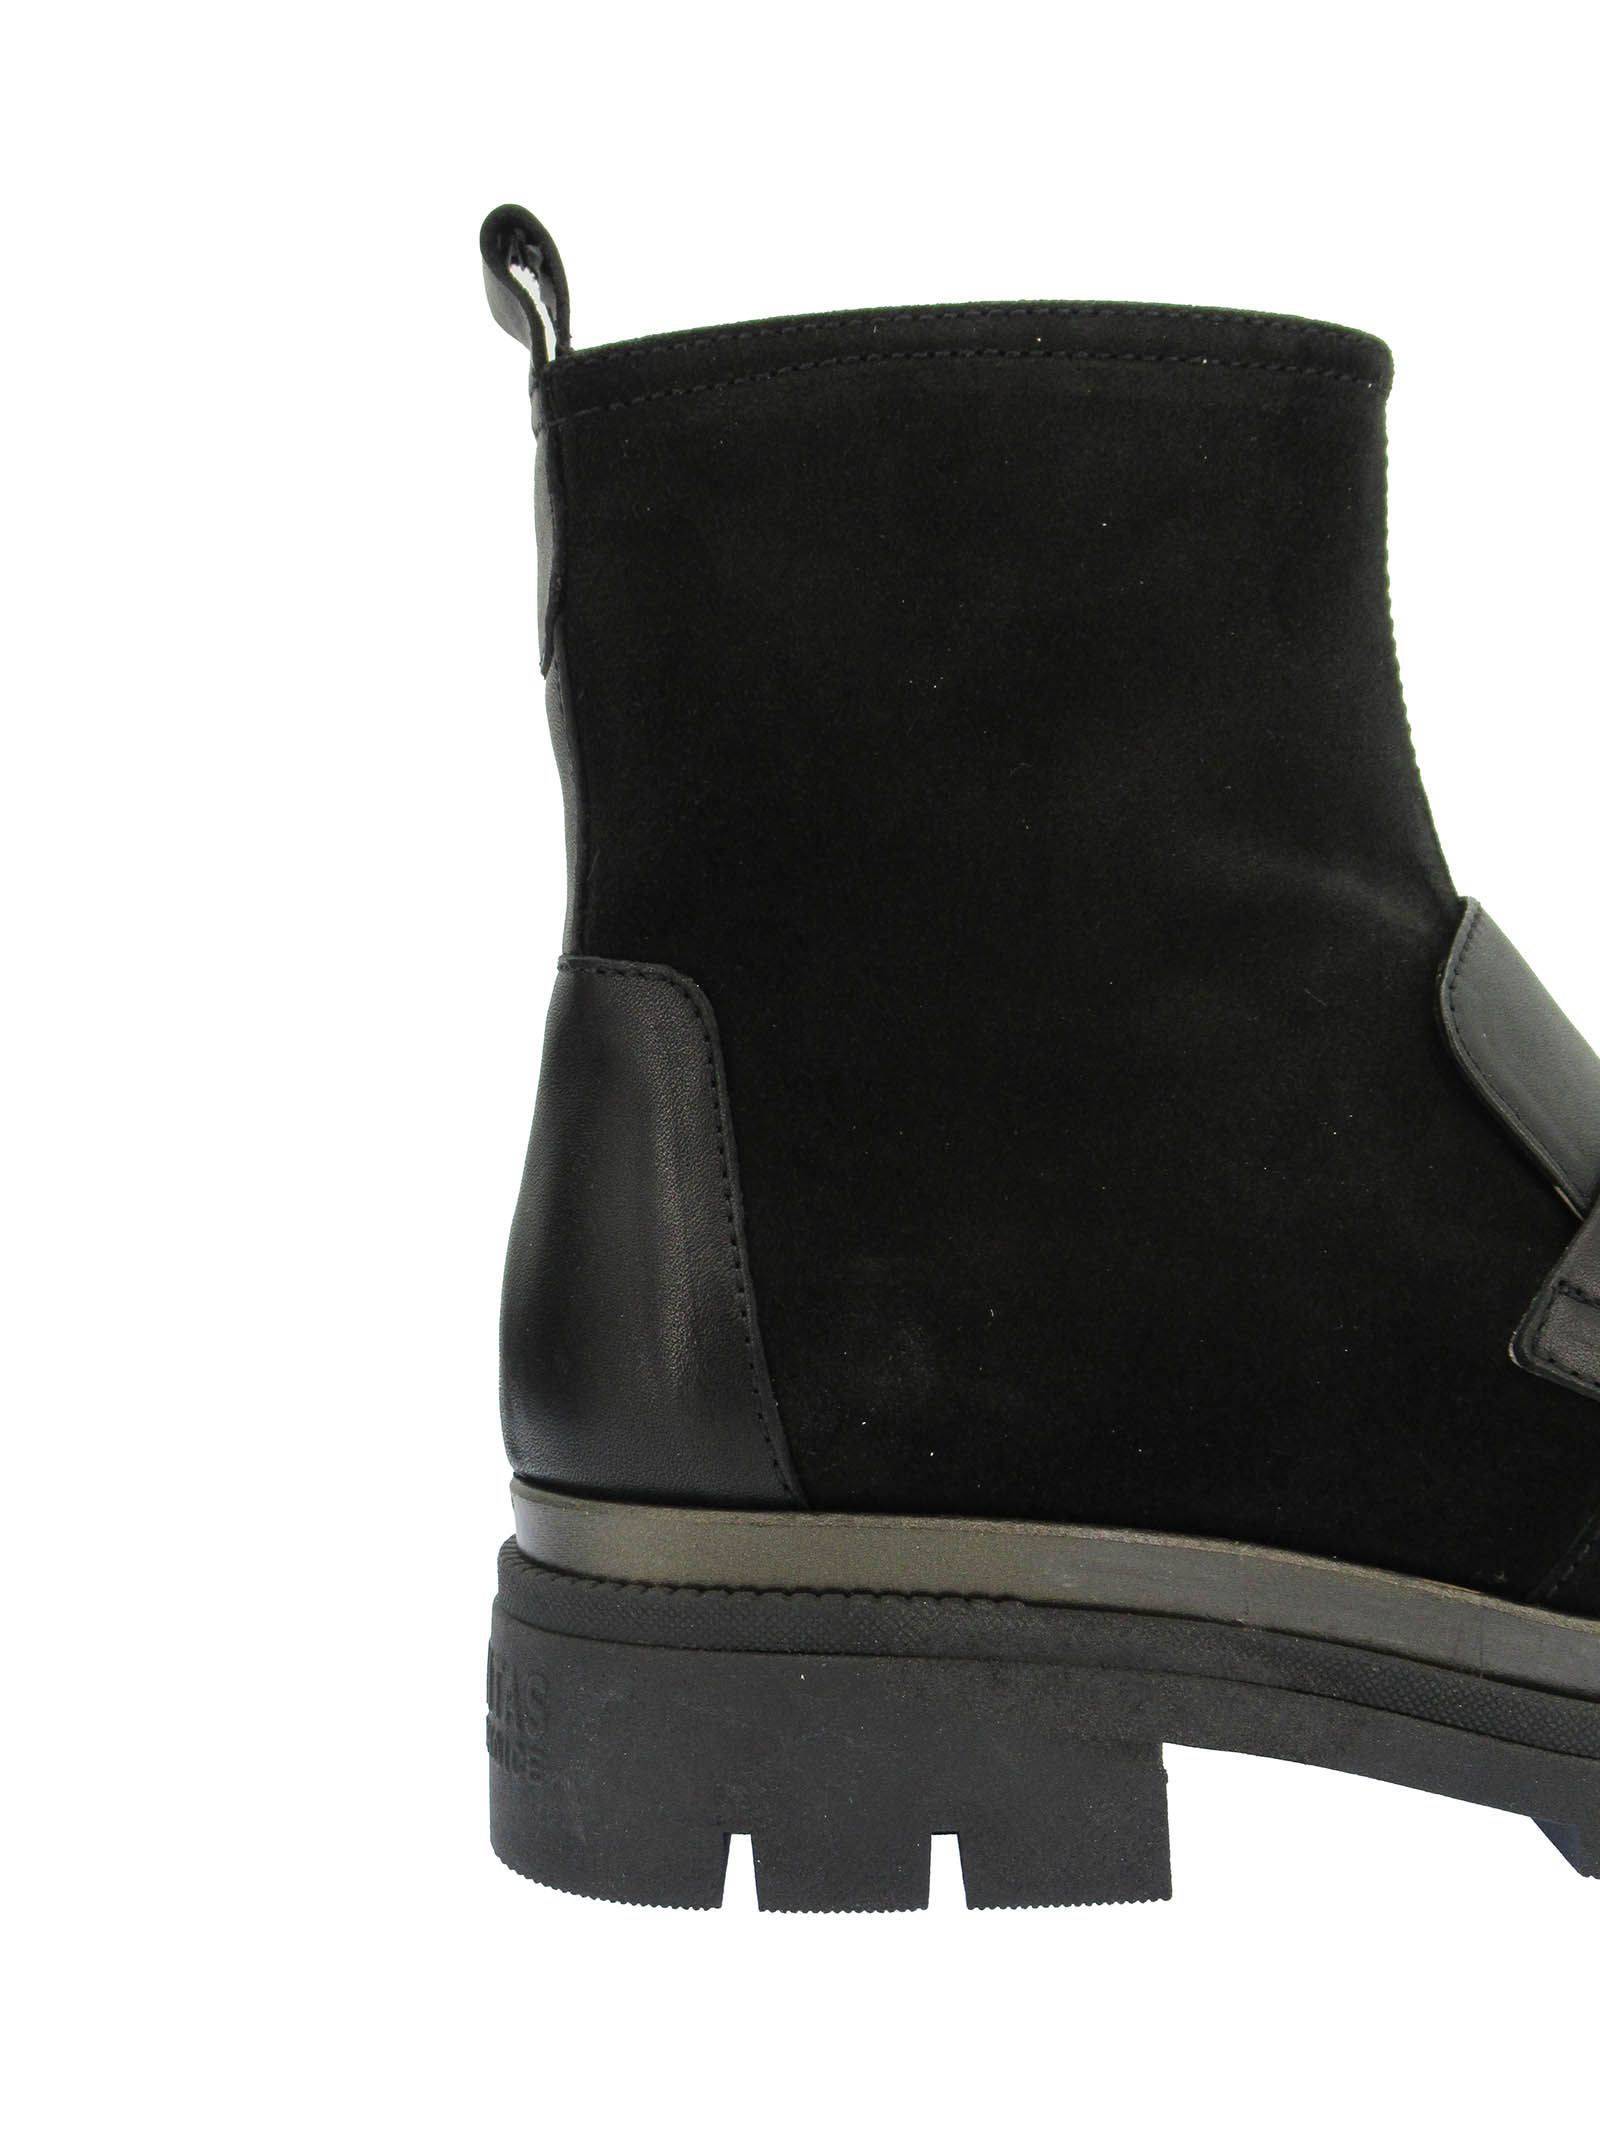 Women's Shoes Ankle Boots Alison in Black Leather and Suede with Burnished Accessory and Rubber Wedge Hispanitas | Ankle Boots | HI211892001